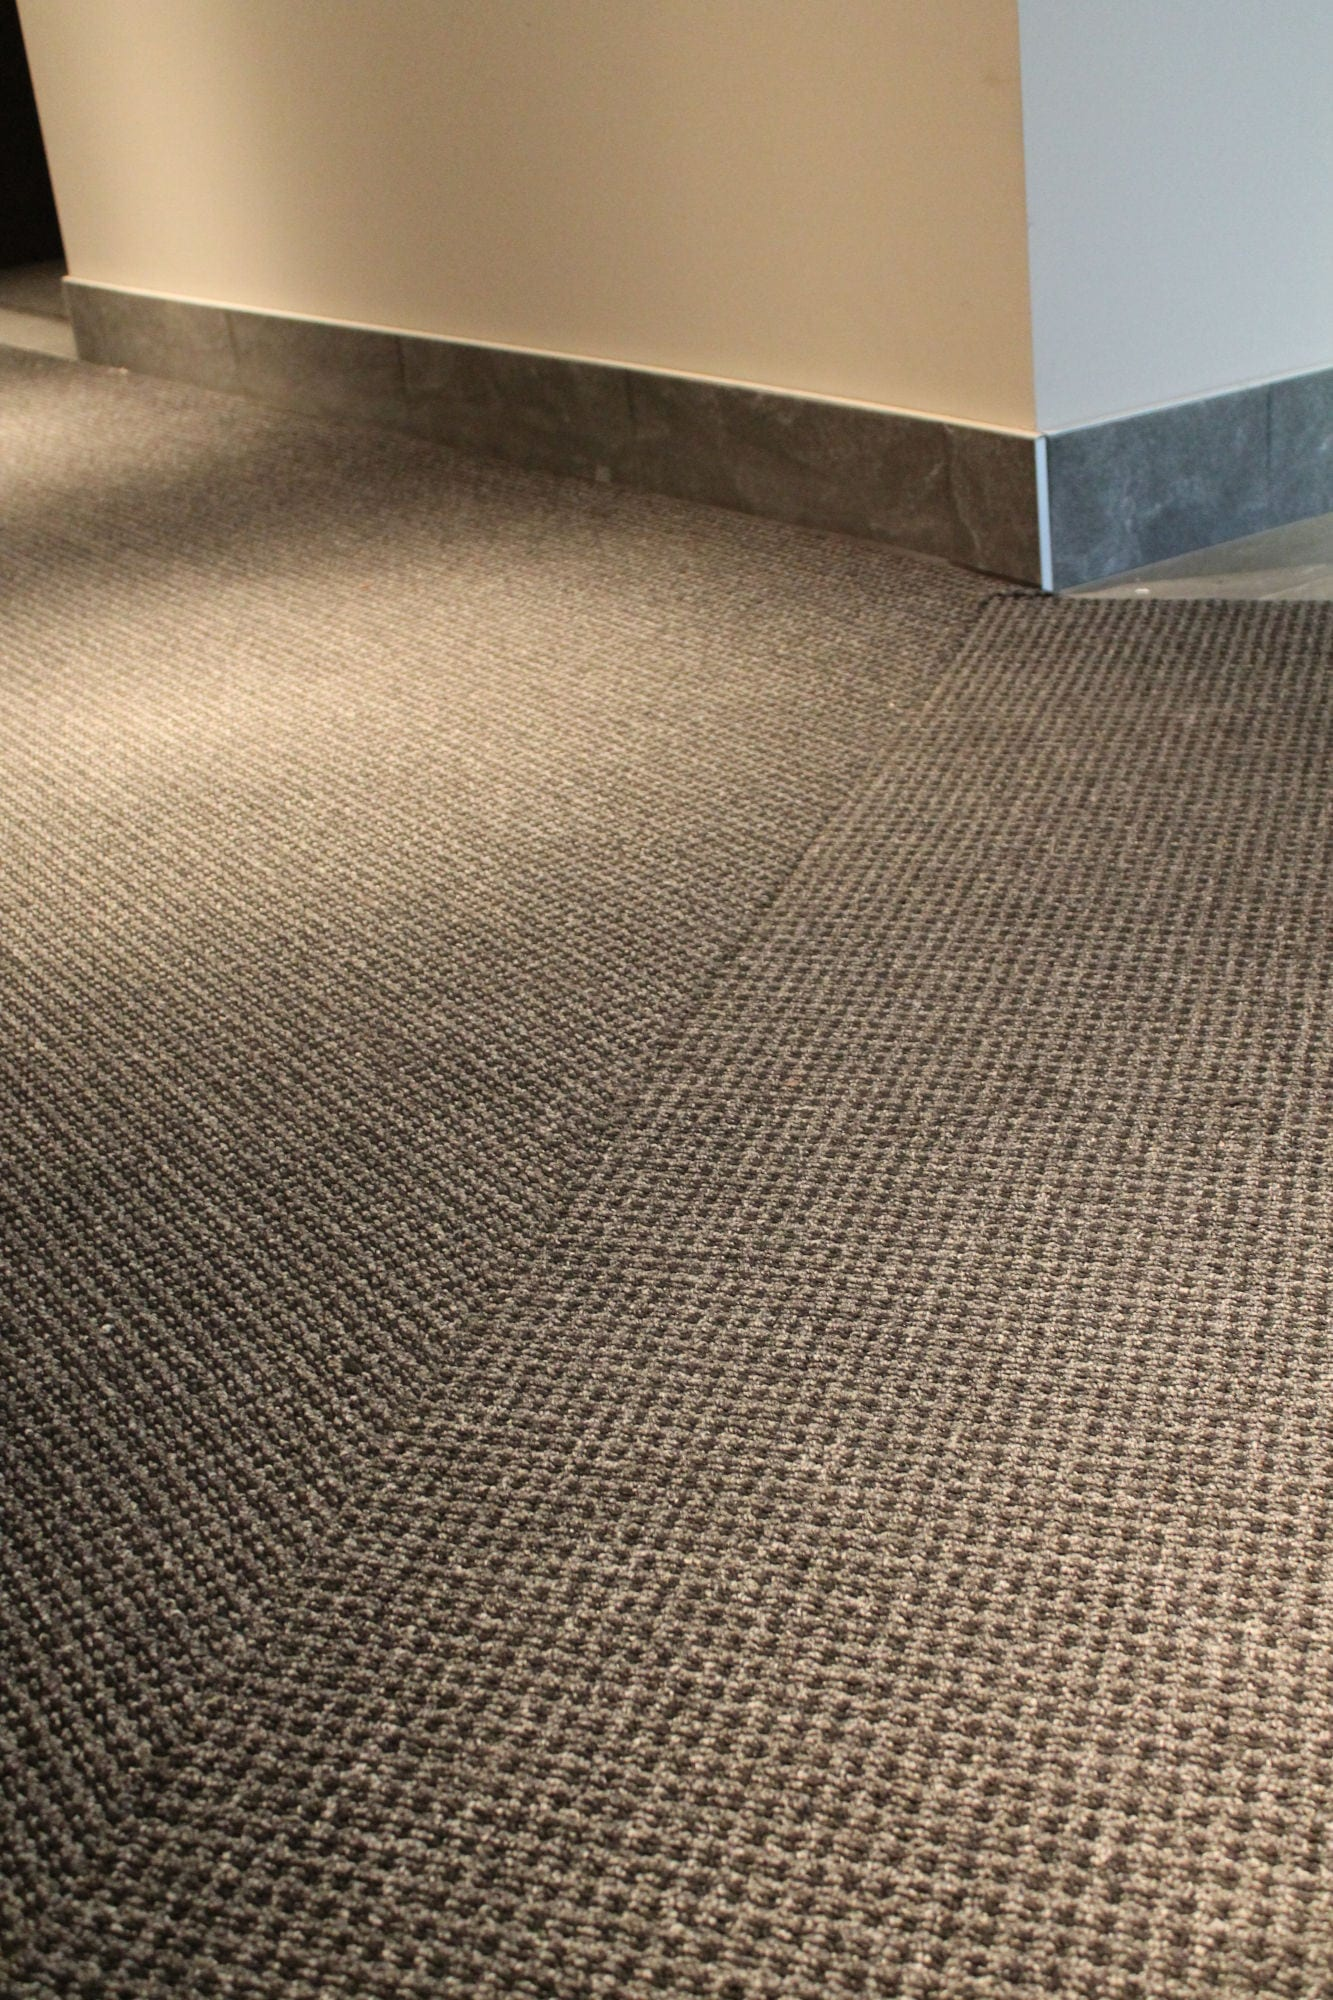 Close up view of interior view of entrance matting at Patricia Avenue